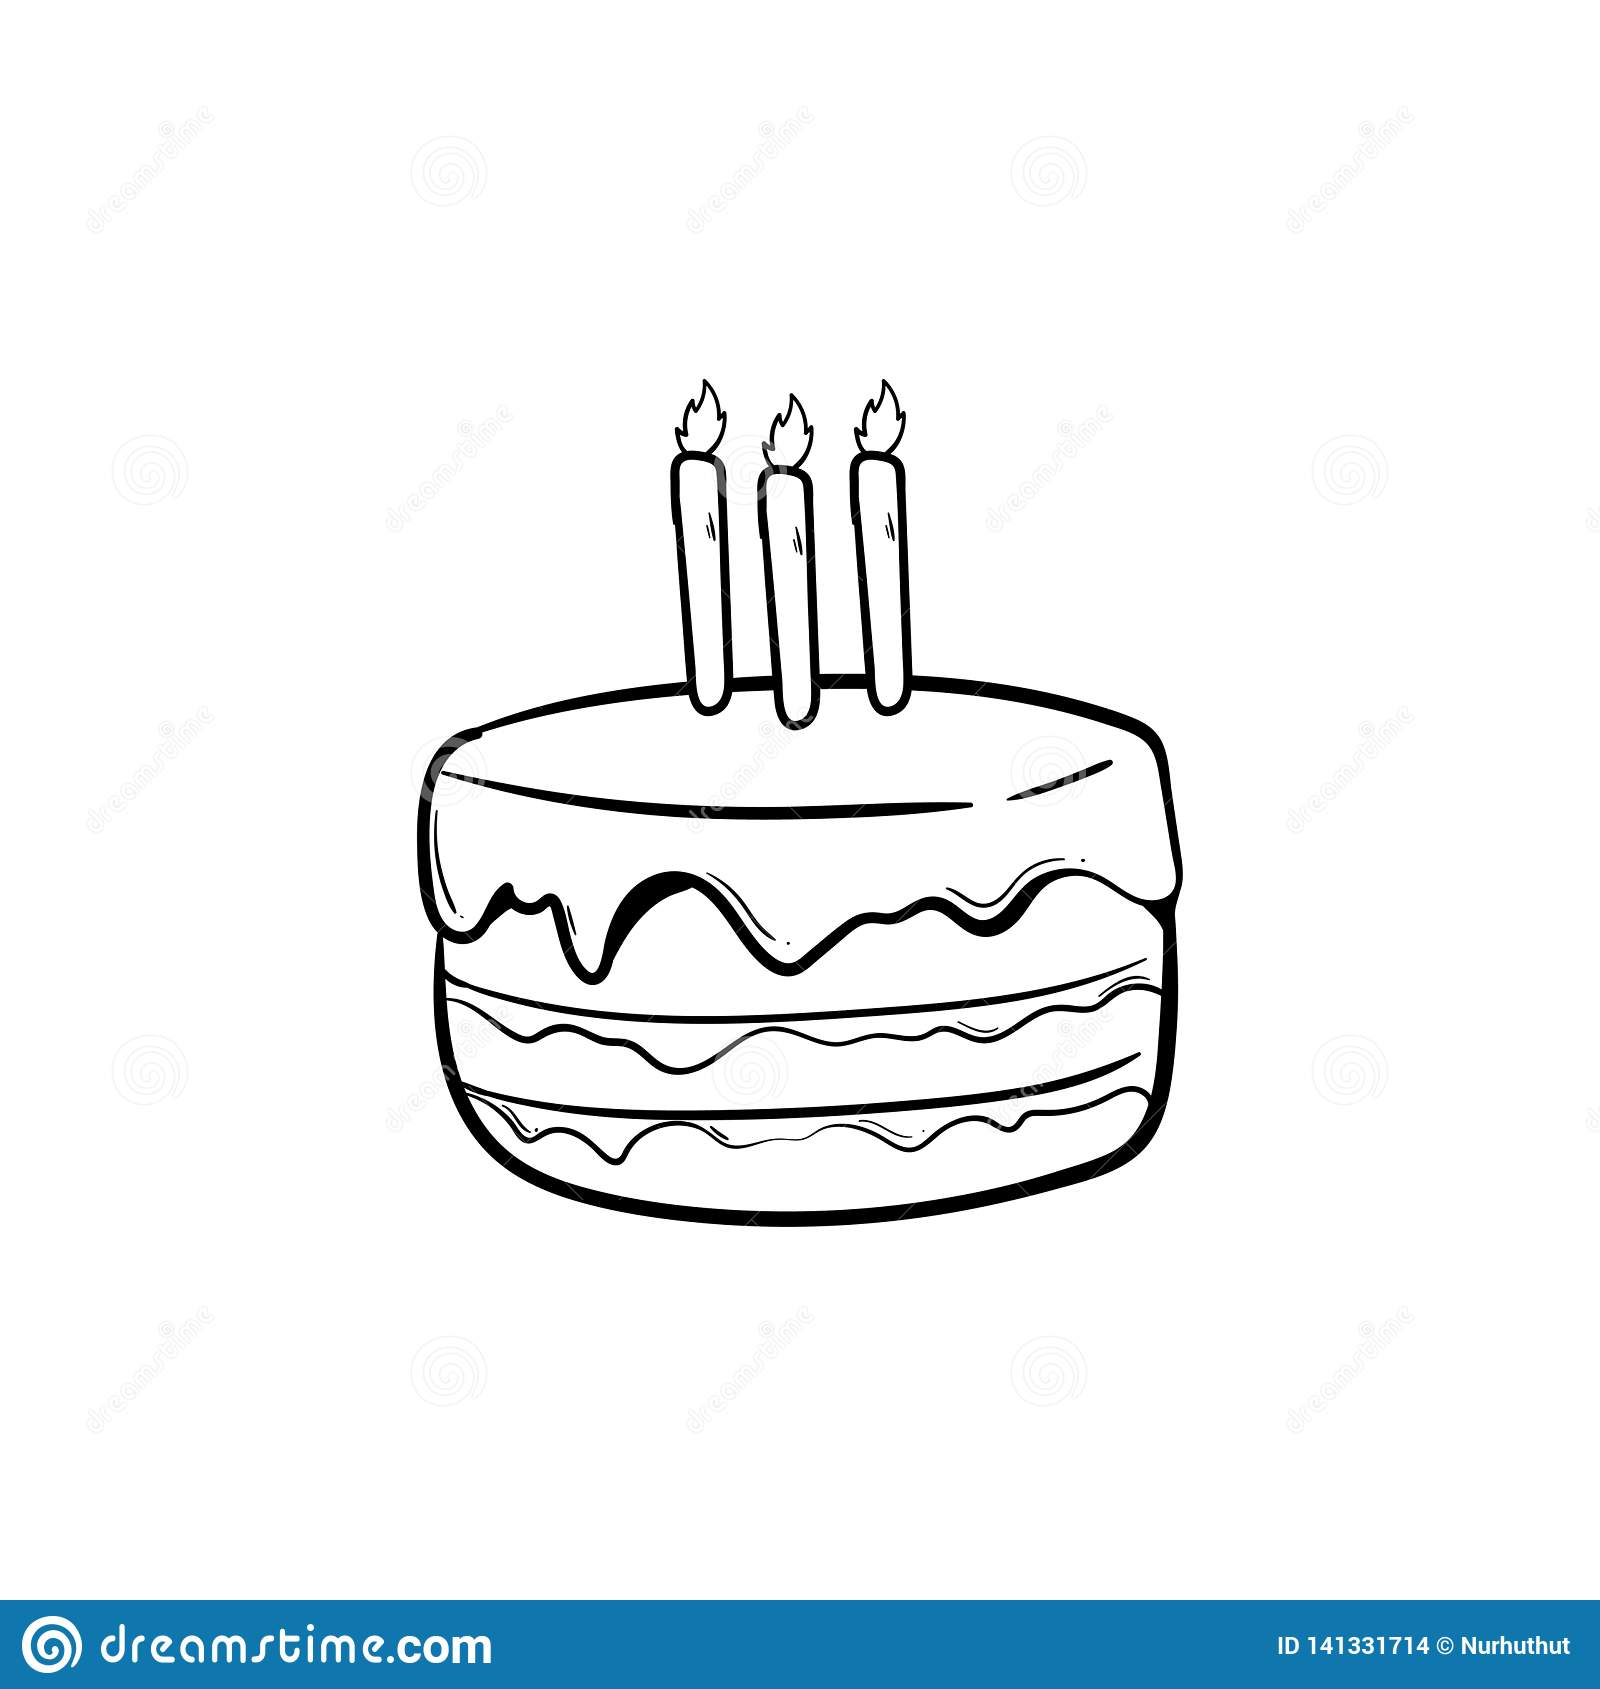 Cool Birthday Cake With Outline Using Doodle Art Stock Vector Funny Birthday Cards Online Bapapcheapnameinfo